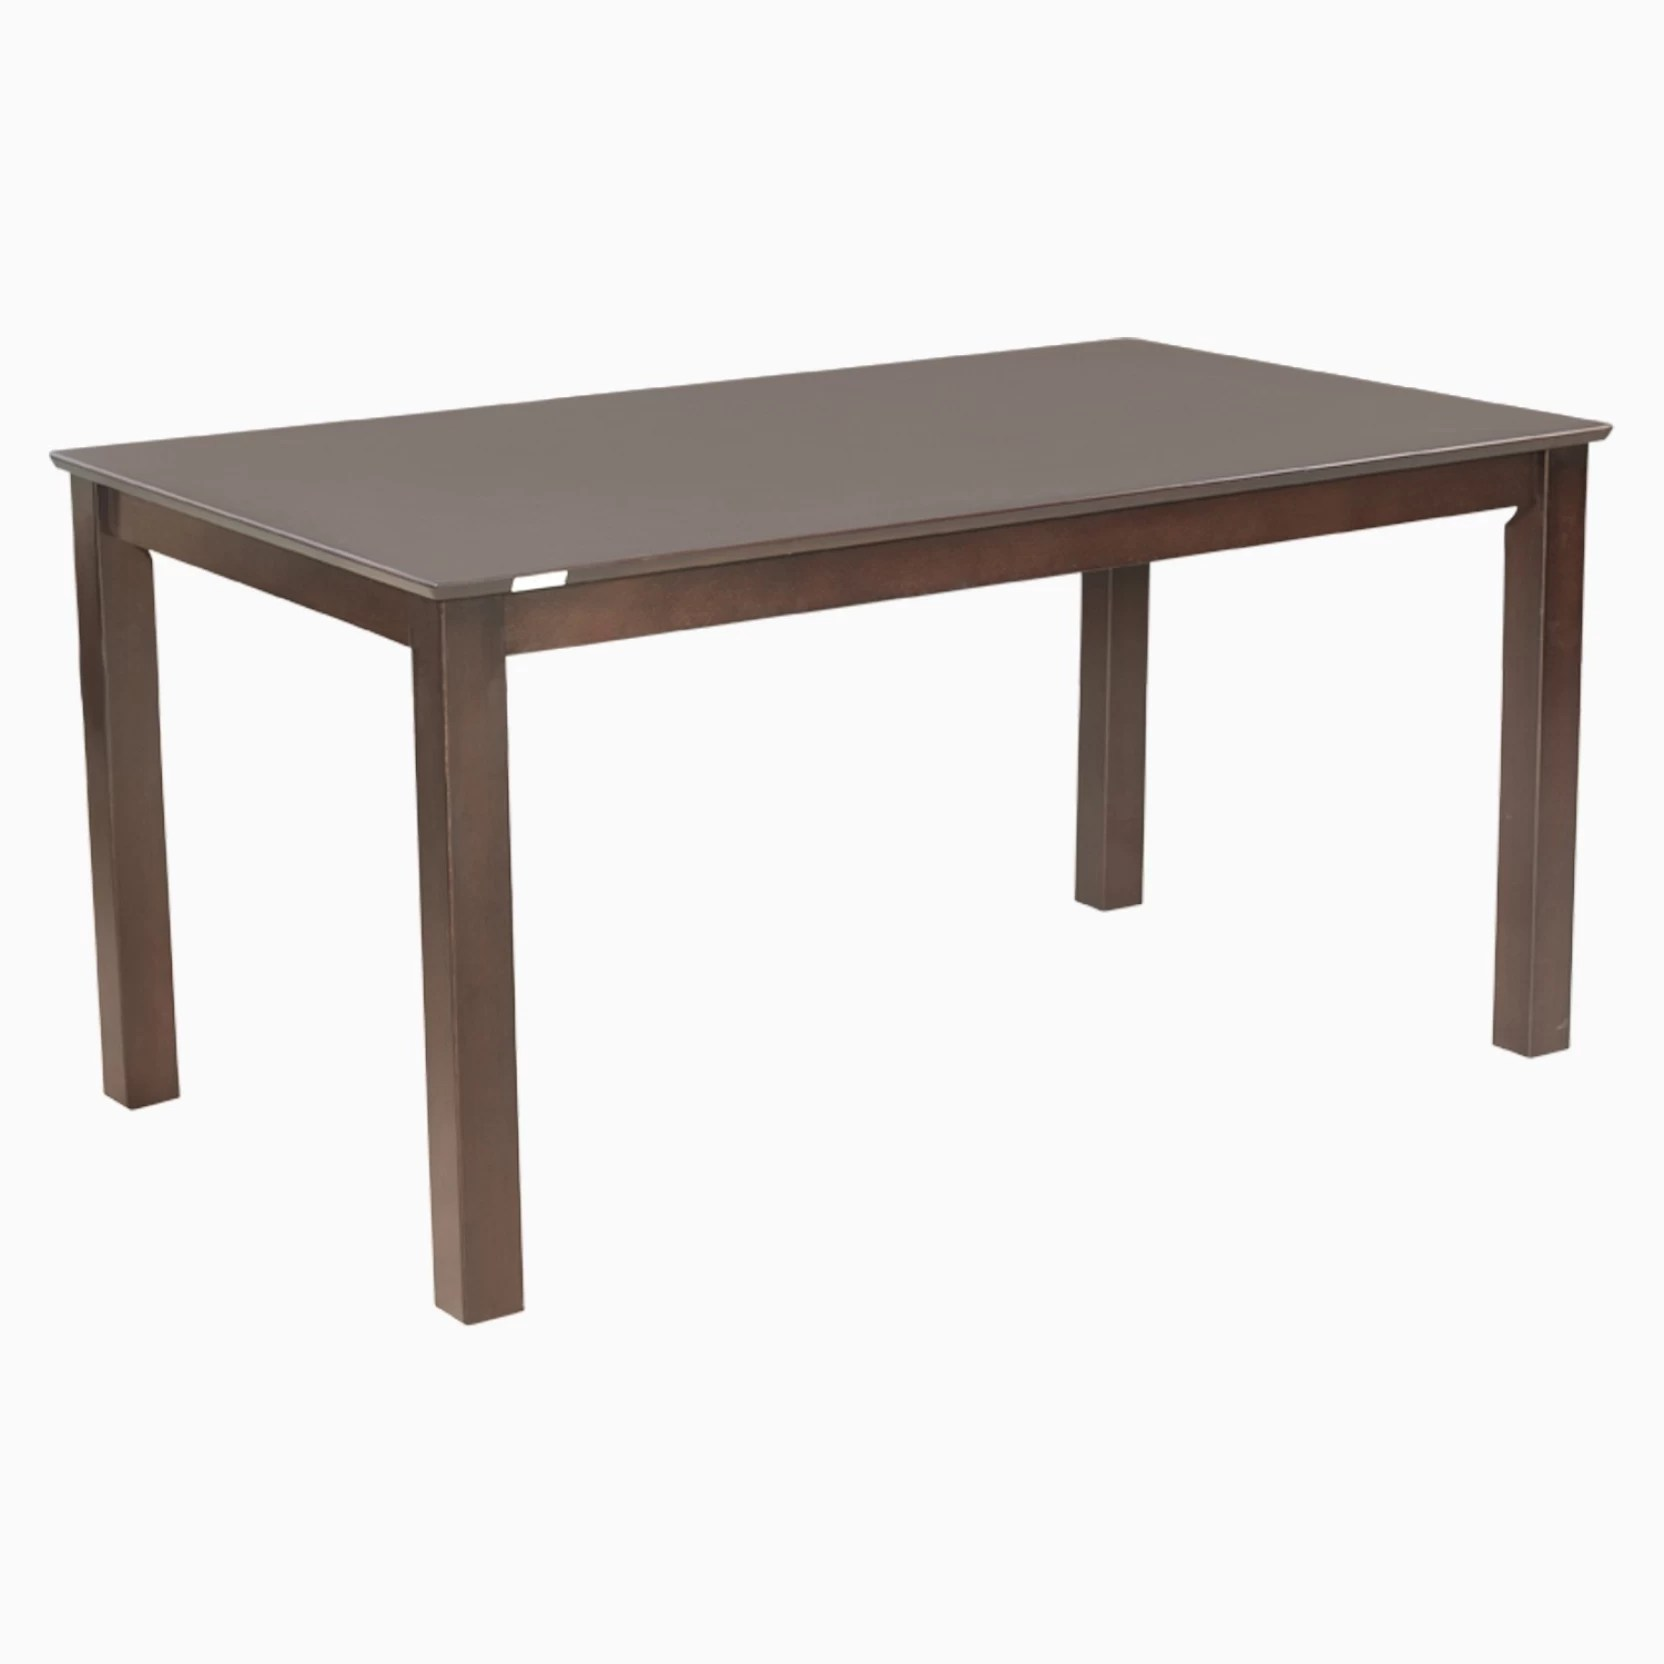 Bettsofa Interio Ch Godrej Interio Julius Plus Din Table Ind Magn Engineered Wood 6